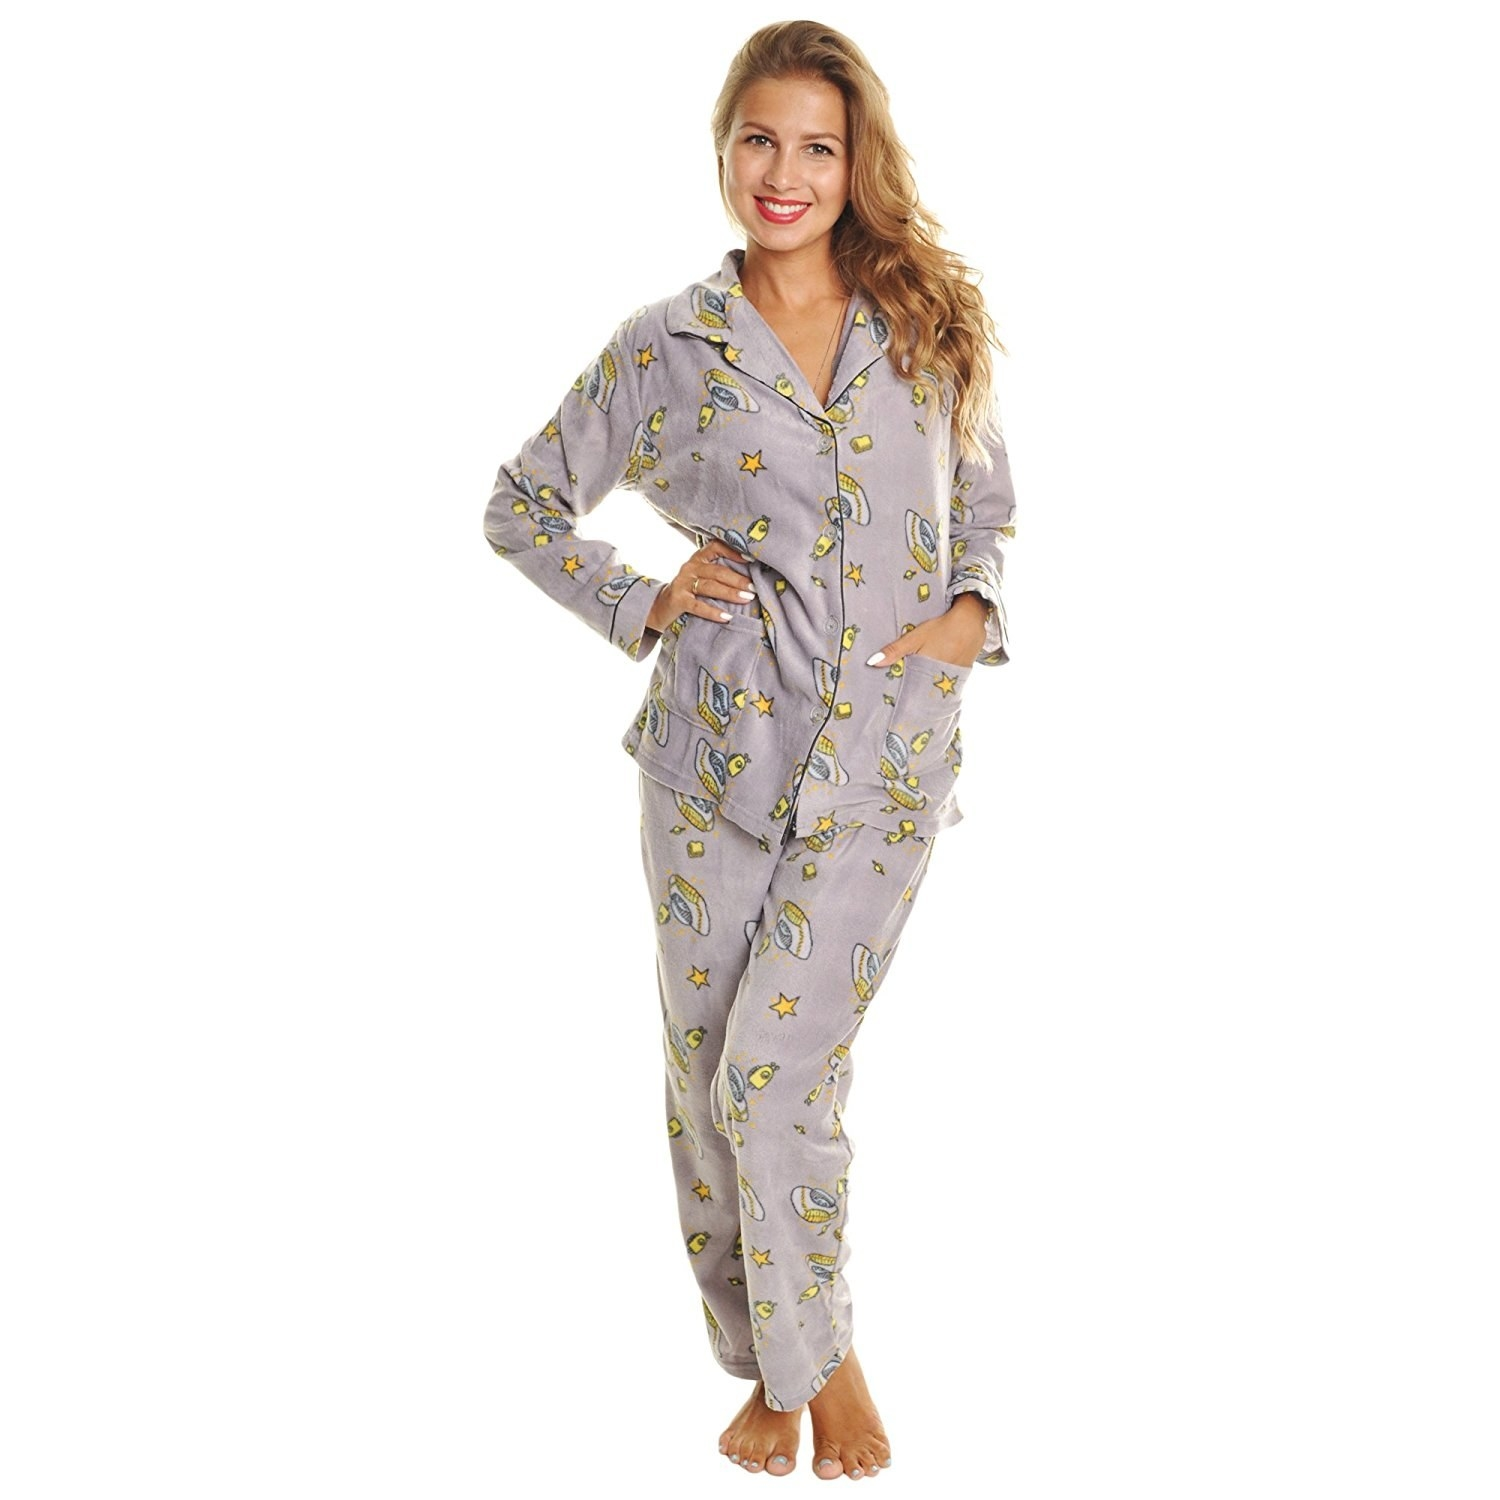 A pajama set sort of out of this world. Don t be worried. Just roll with  it 9e7e49170